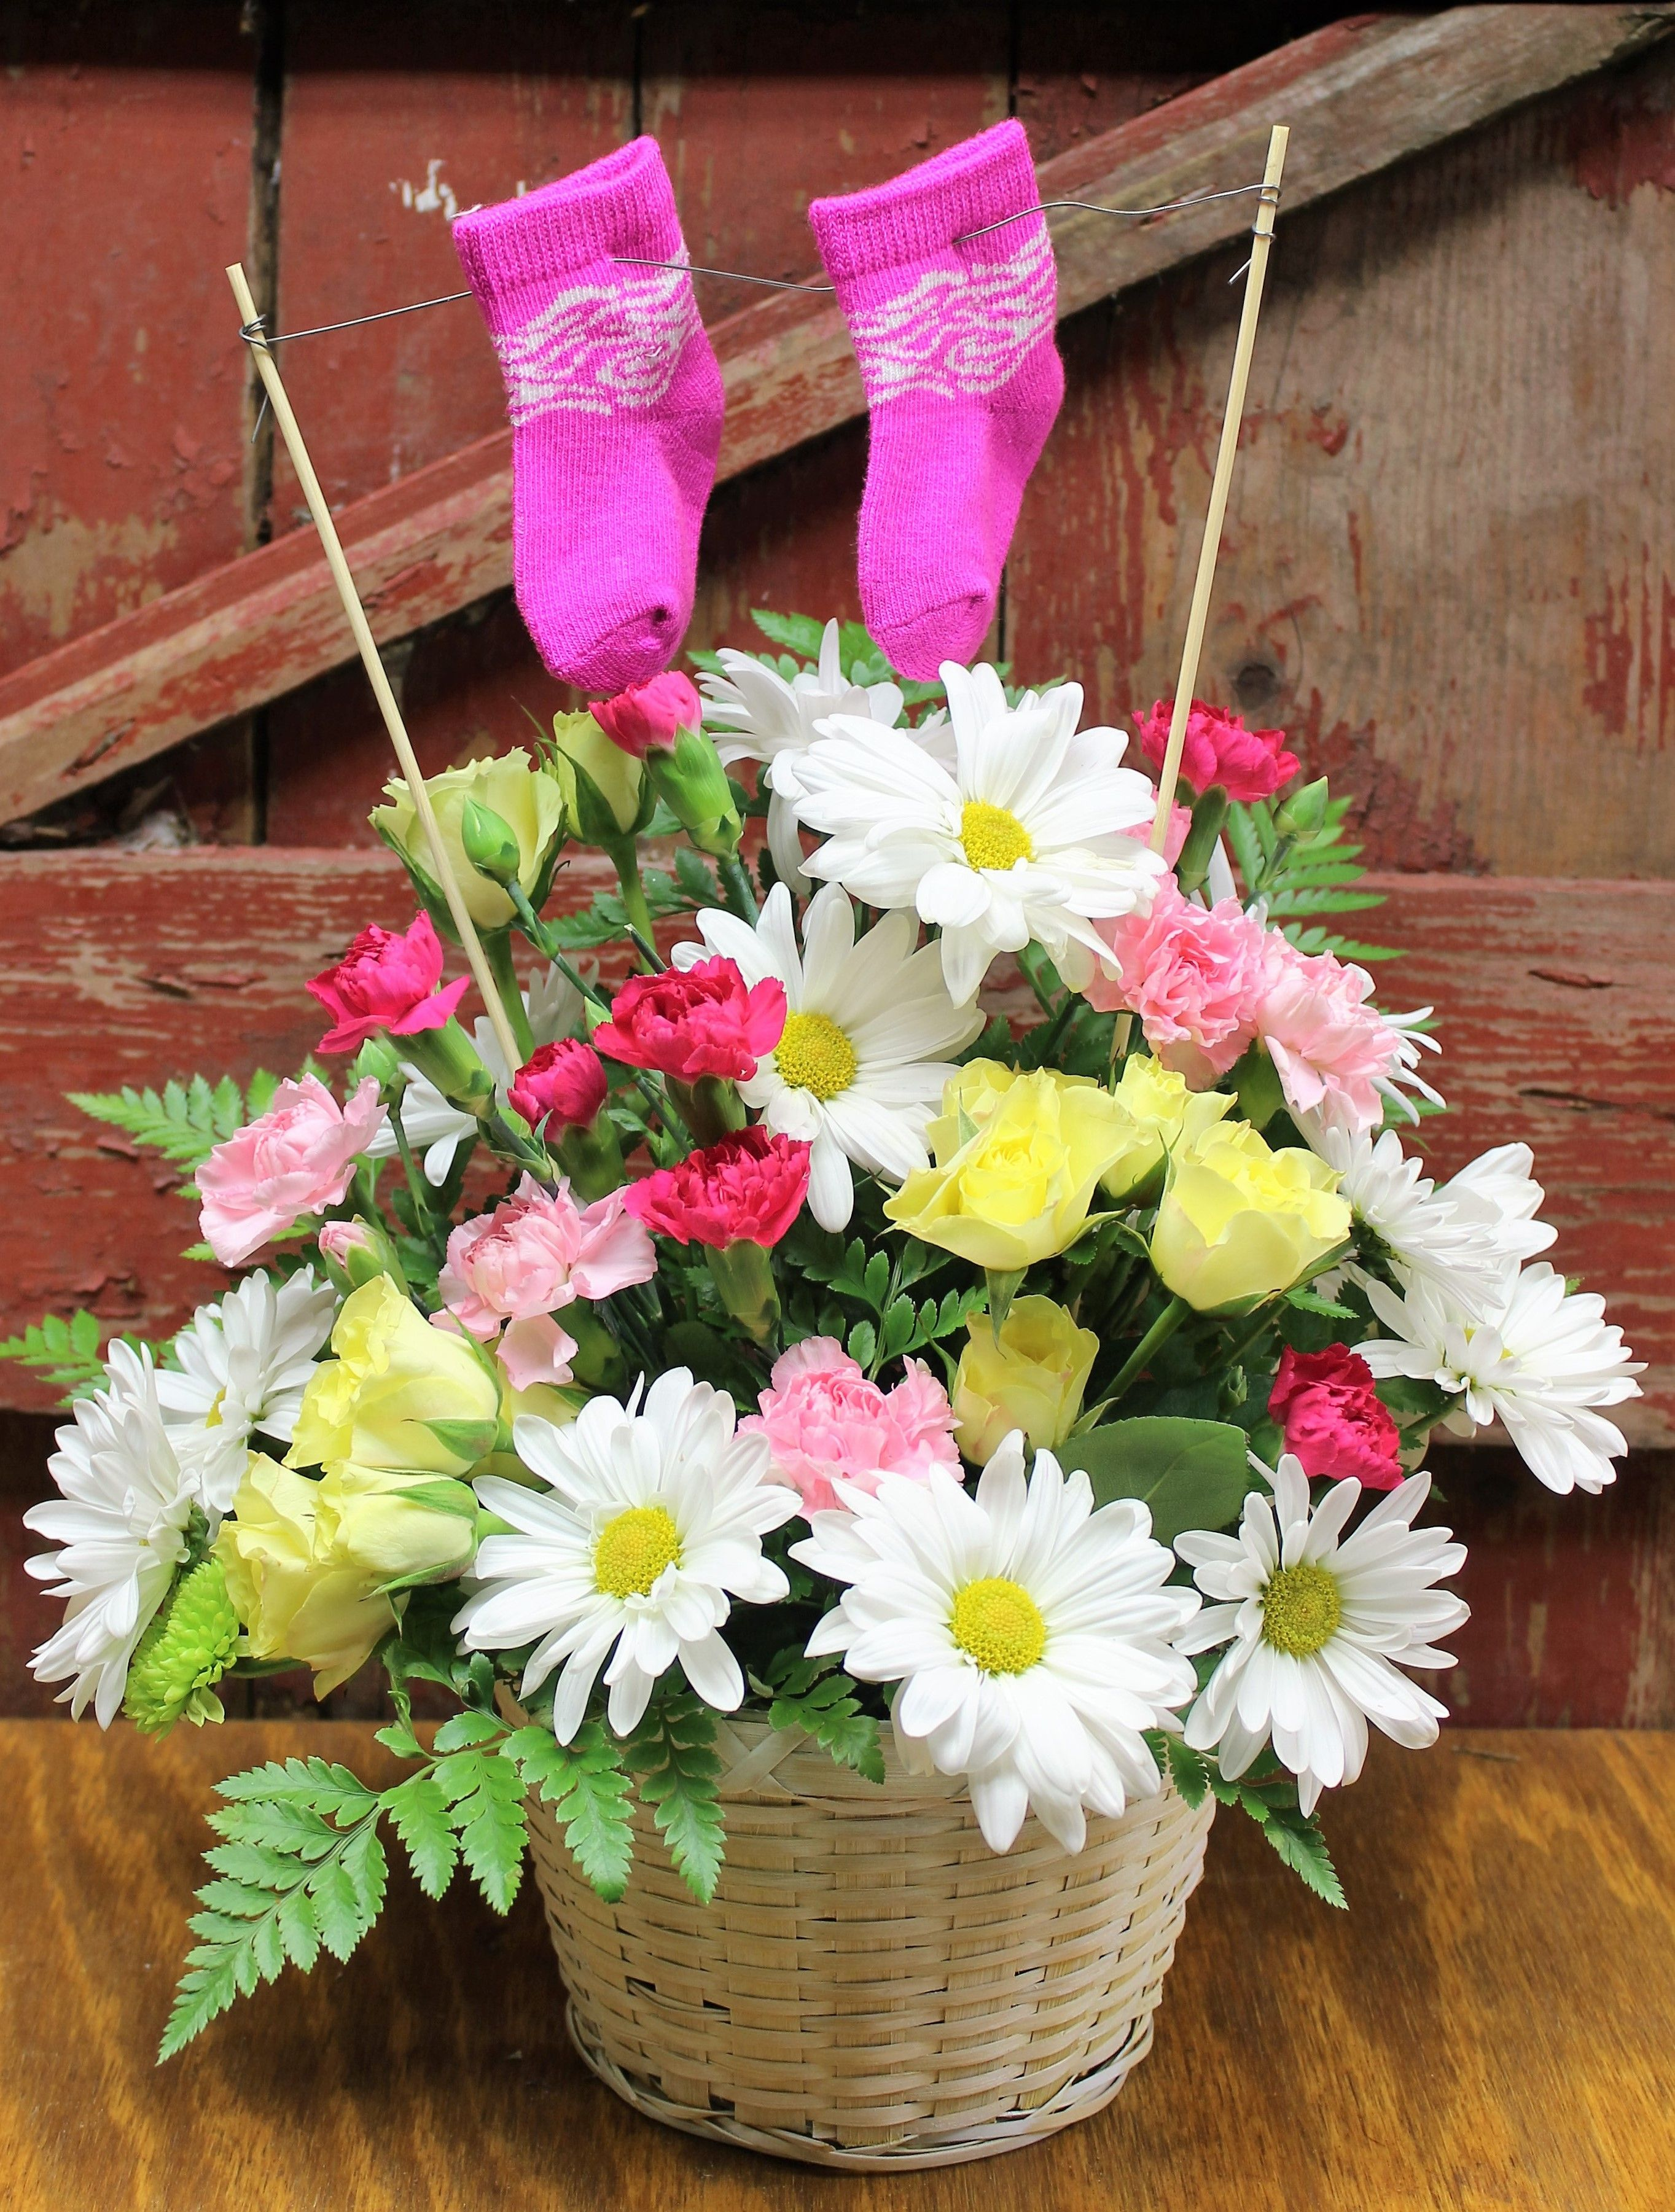 A cute baby flower arrangement to welcome her into this world a cute baby flower arrangement to welcome her into this world izmirmasajfo